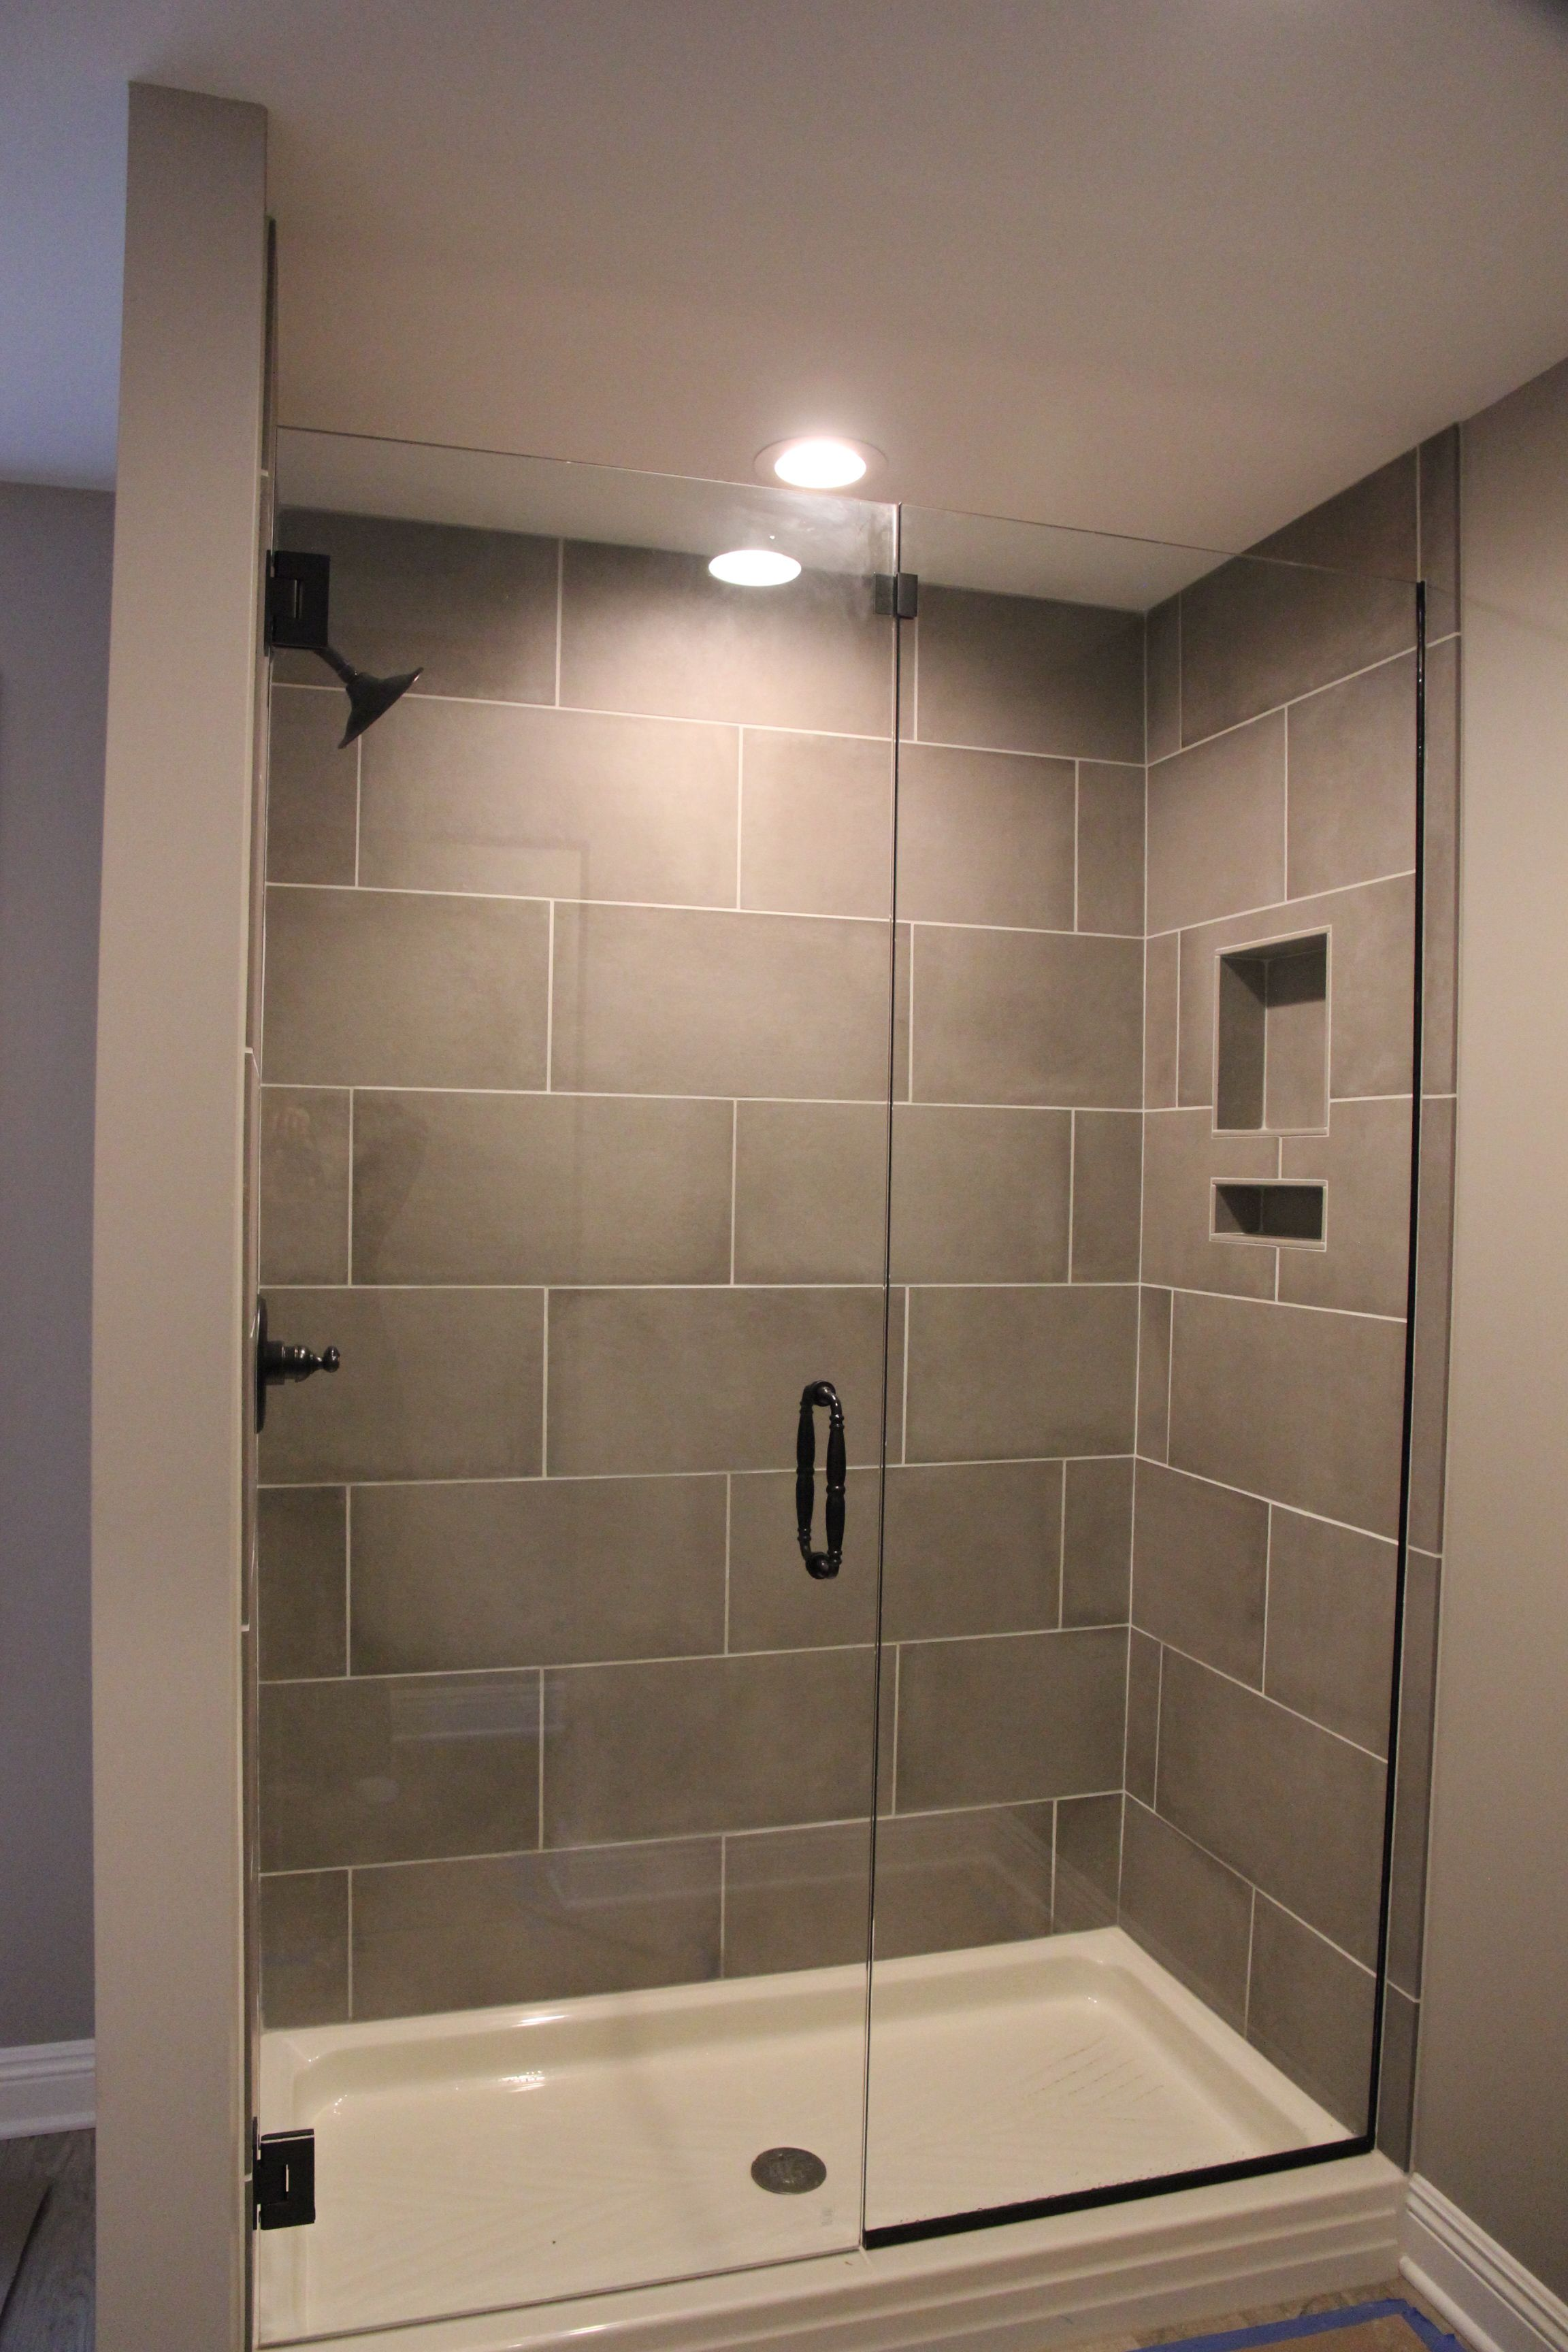 Boys Showers Big Tiles Fiberglass Base No Shower Door Easier